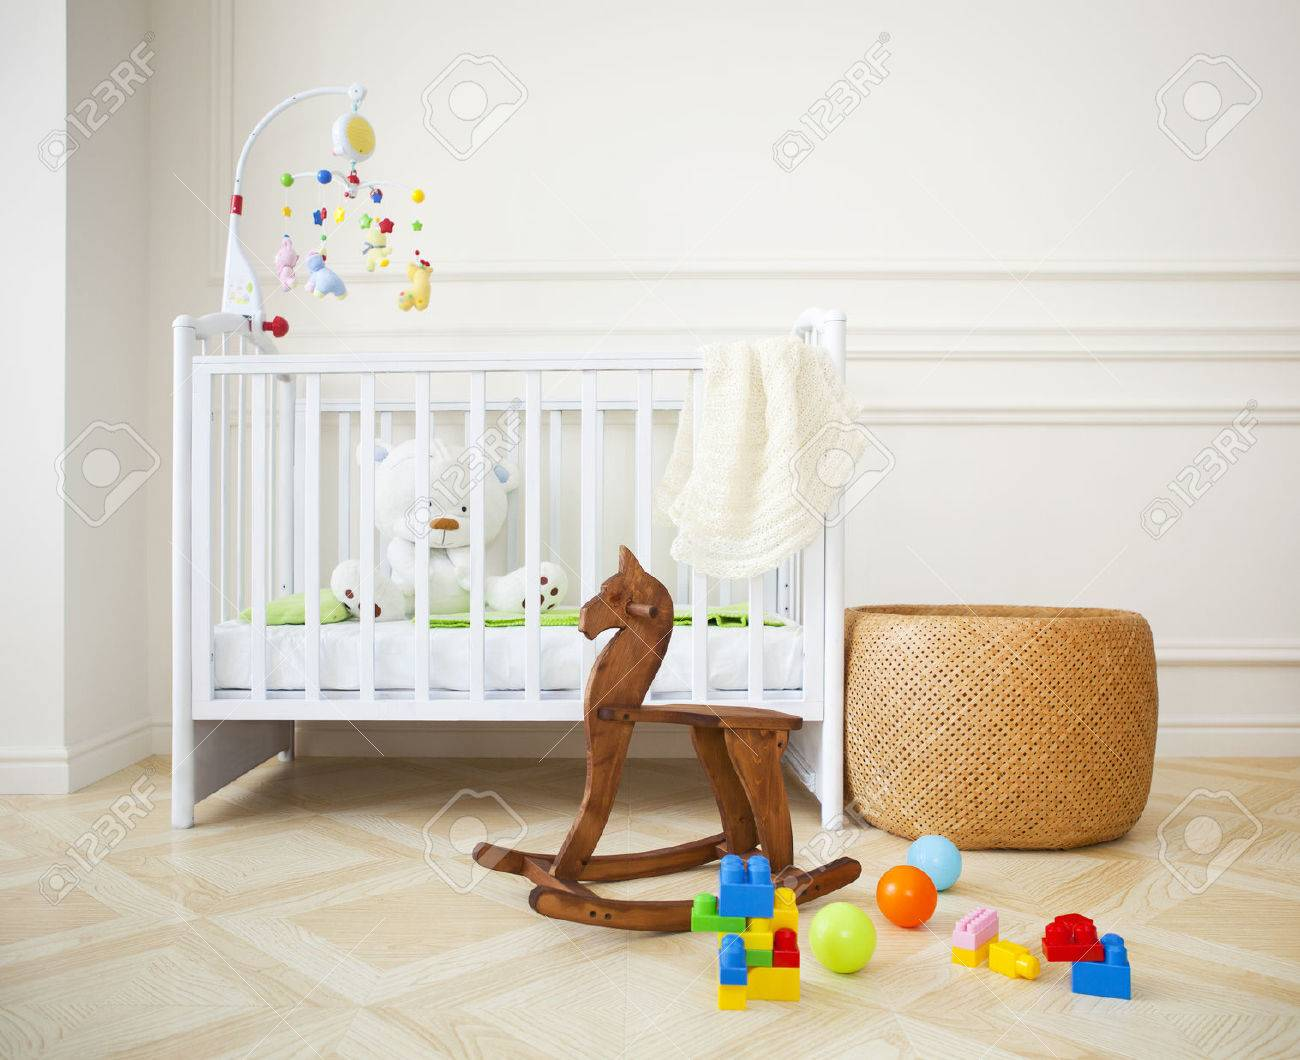 Empty nursery room with basket, toys and wooden horse - 31637897